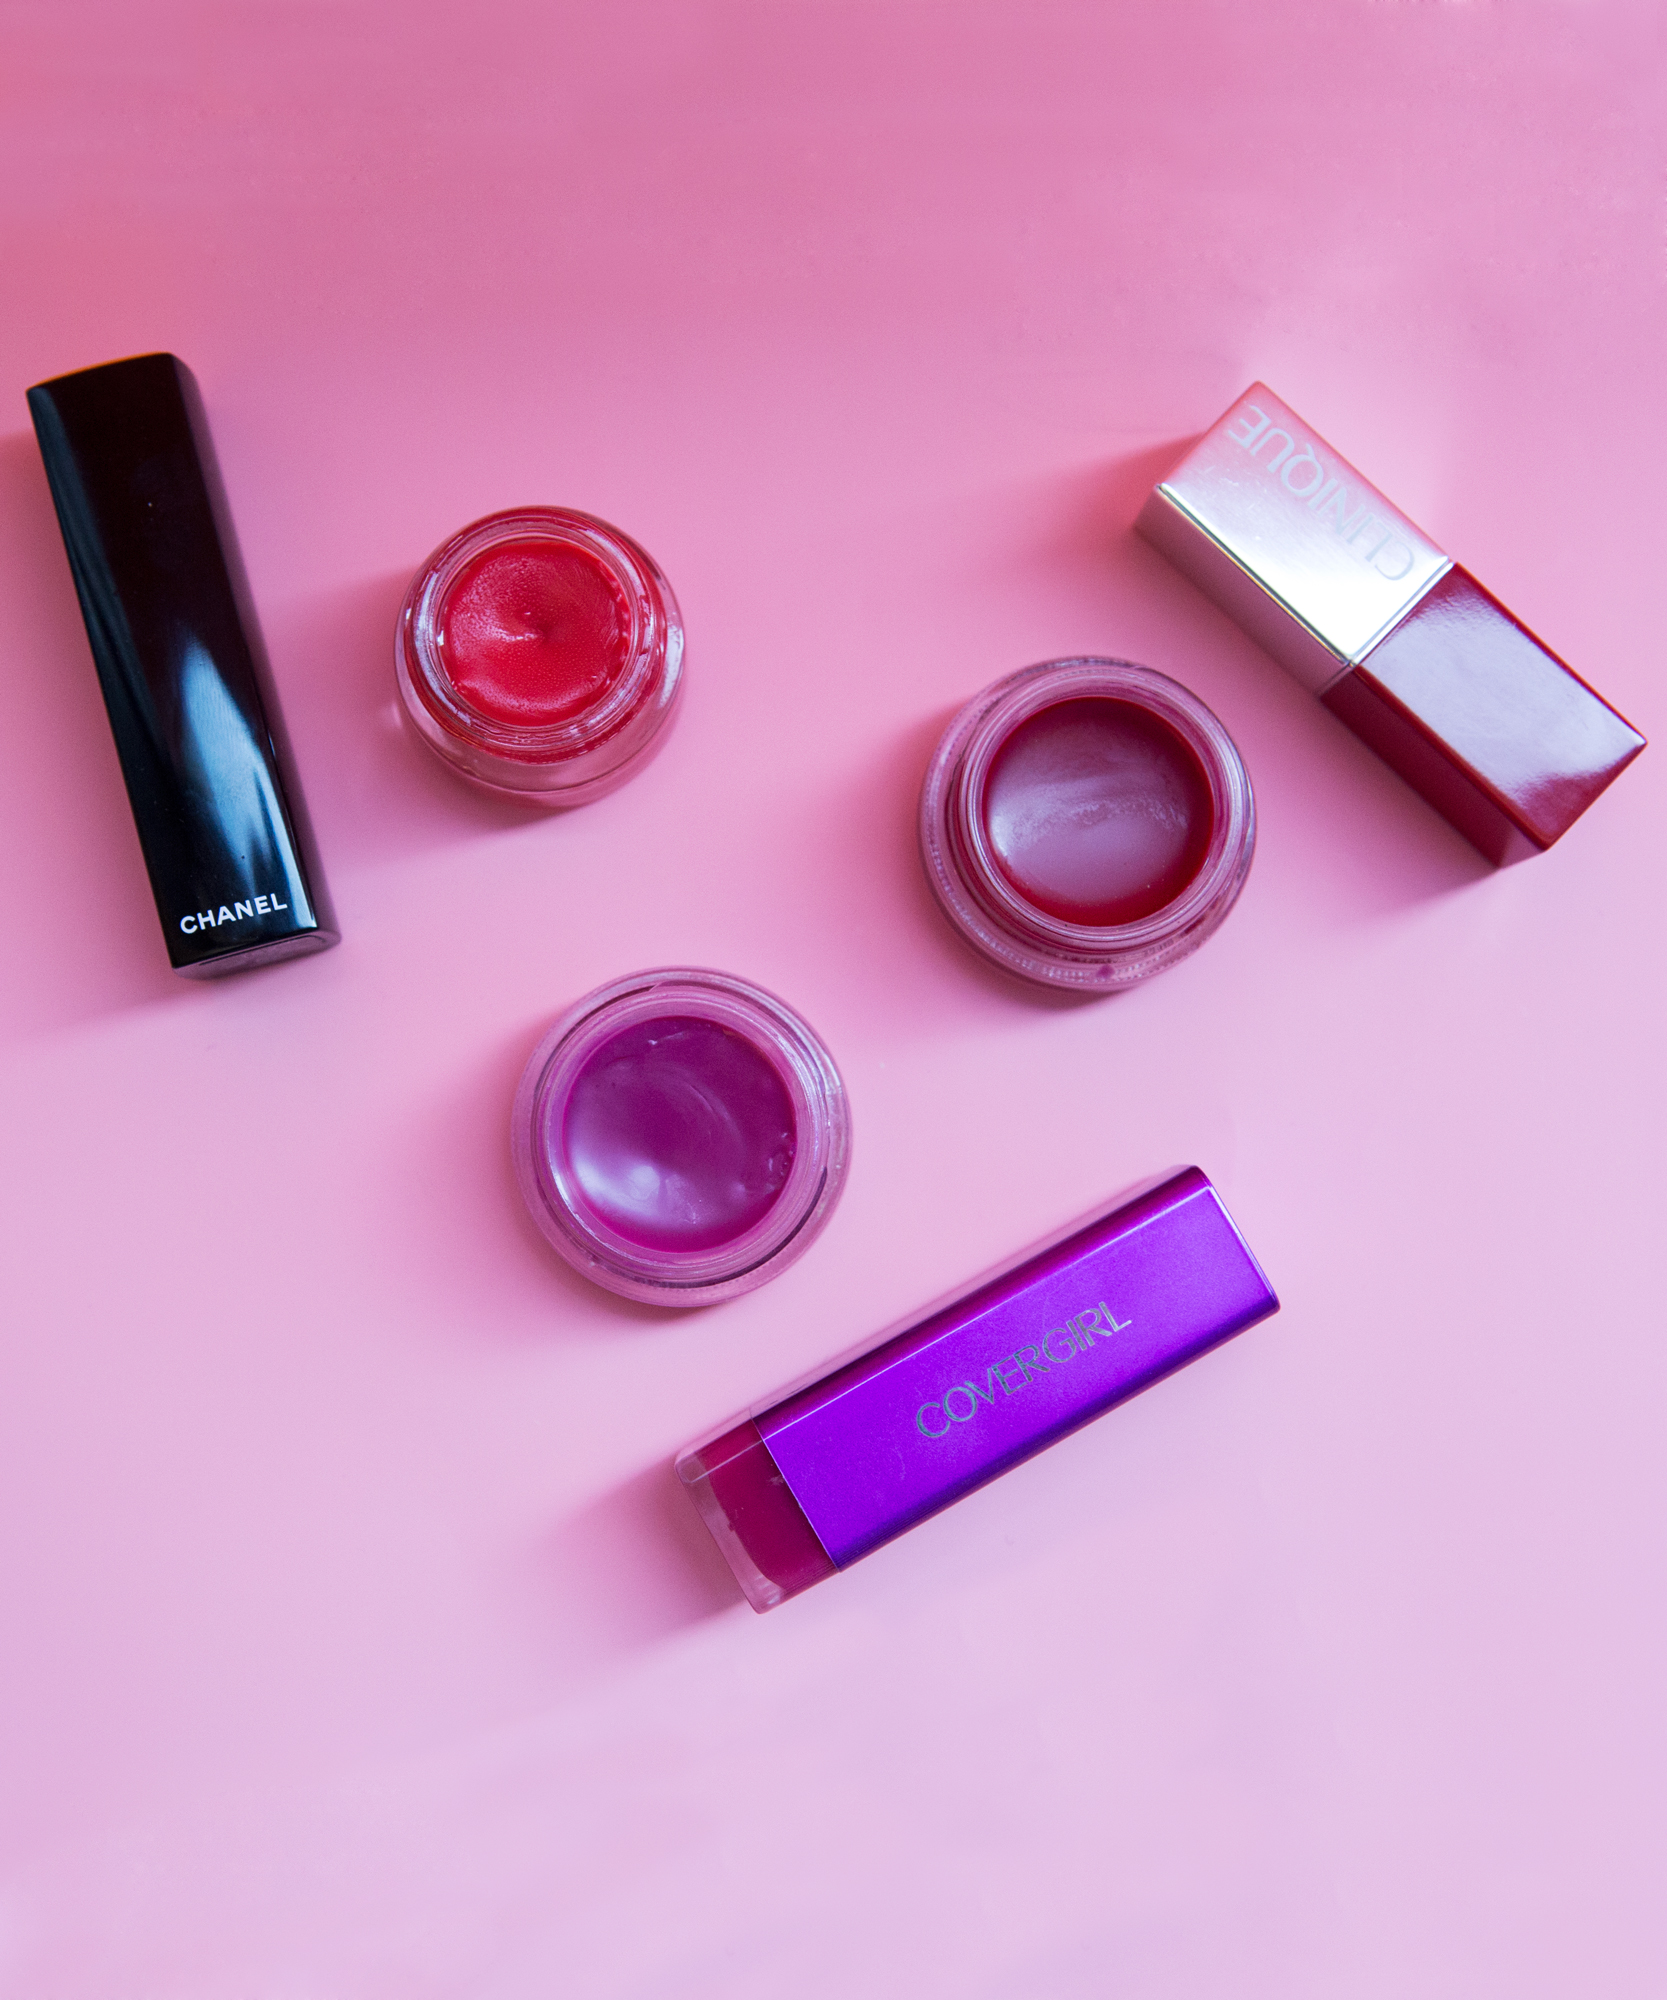 How to Turn Melted Lipstick Into Tinted Lip Balm